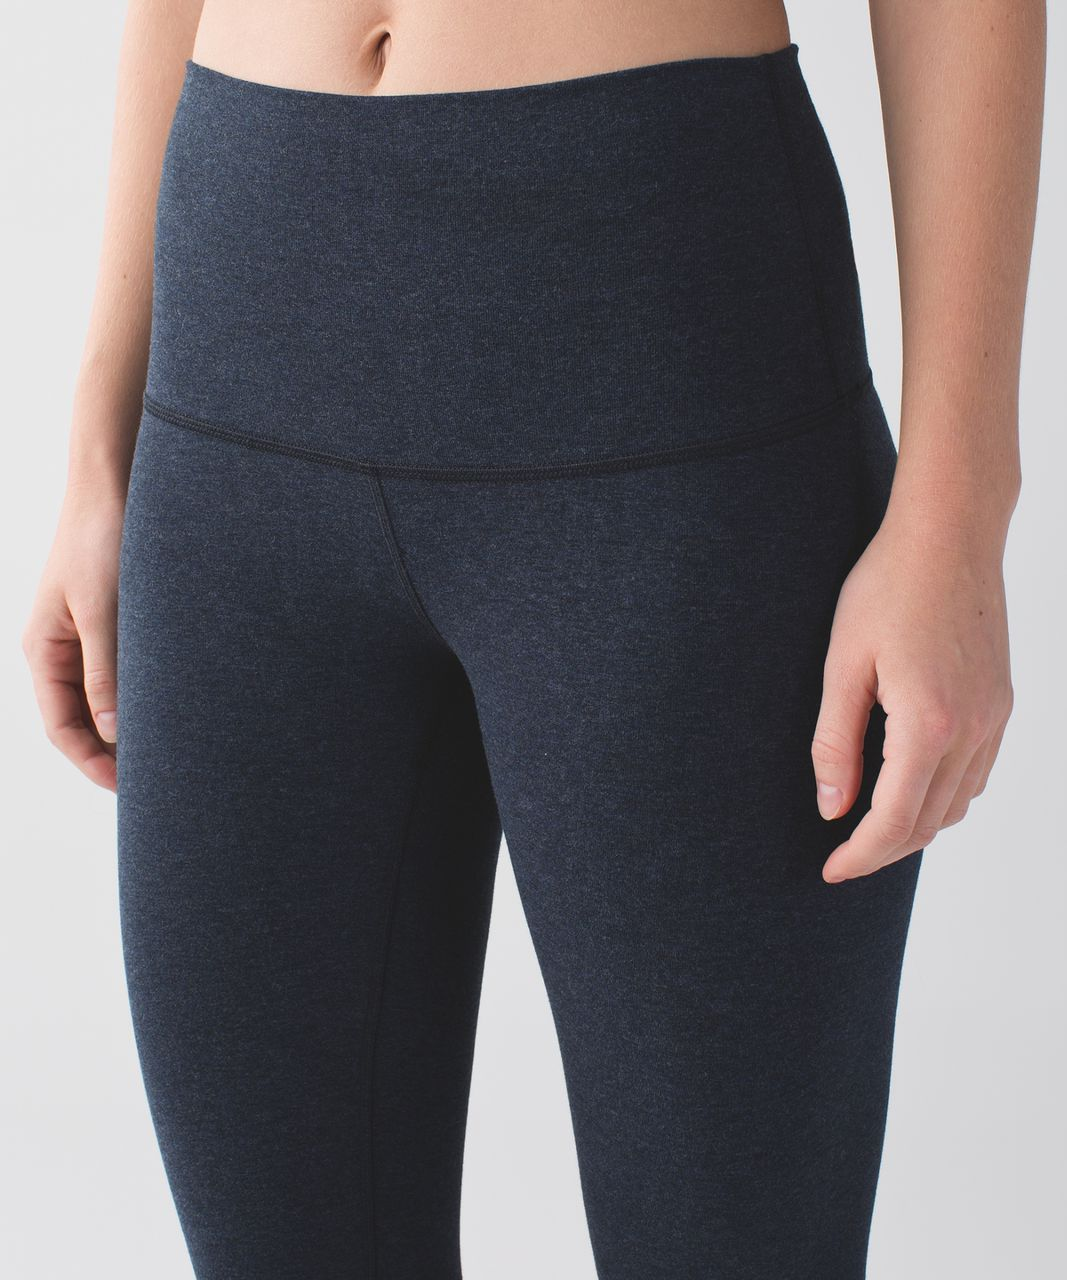 Lululemon Wunder Under Pant (Hi-Rise) *Cotton - Heathered Naval Blue